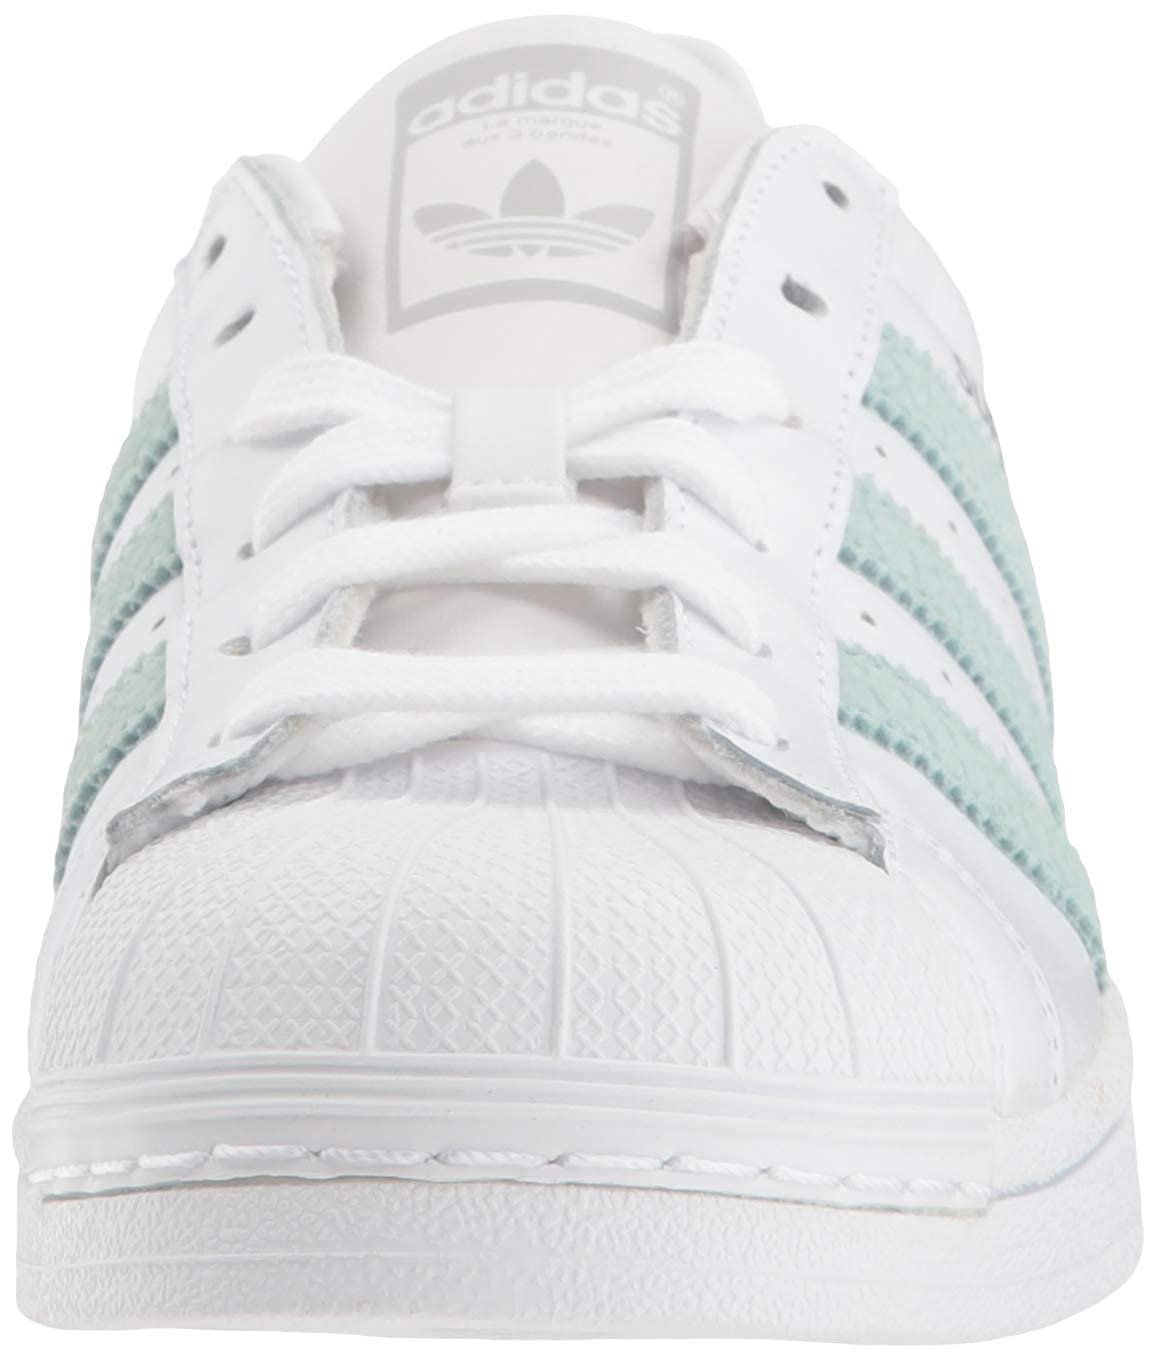 Adidas-Superstar-Women-039-s-Fashion-Casual-Sneakers-Athletic-Shoes-Originals thumbnail 11